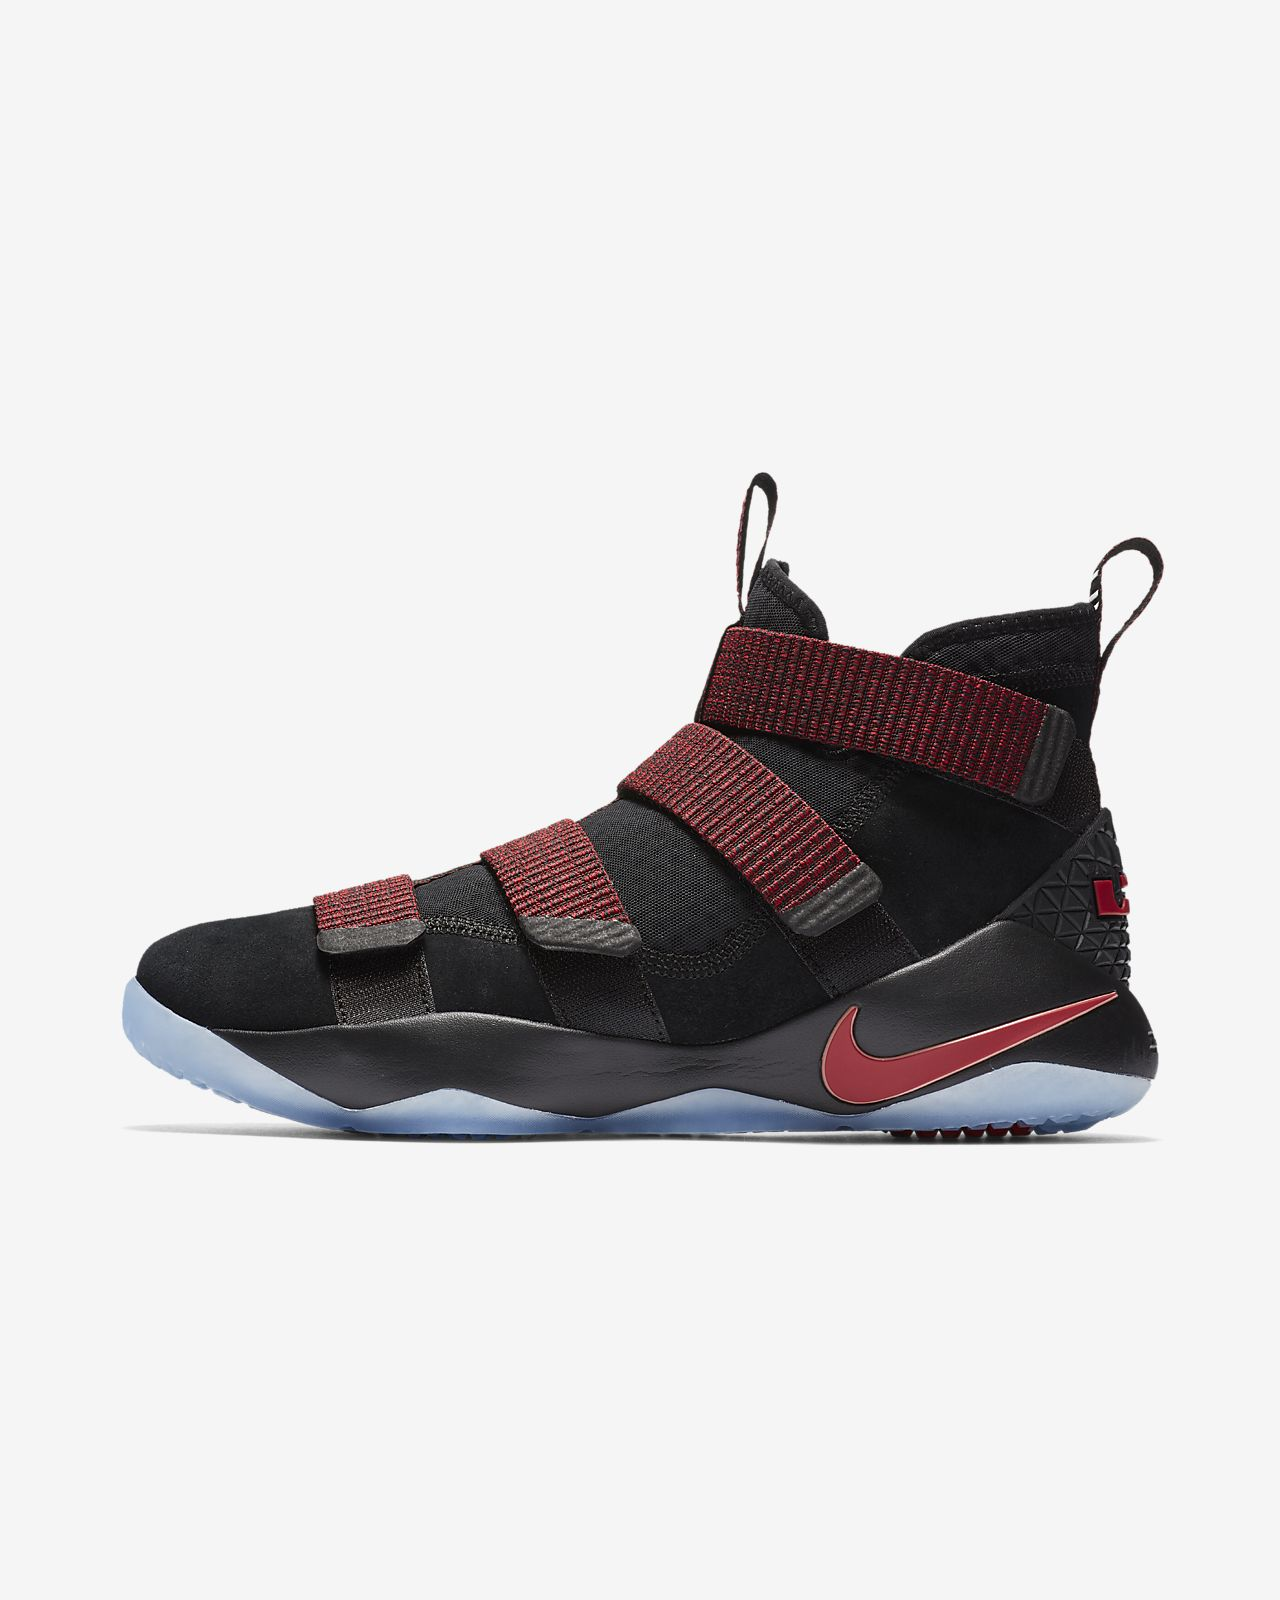 cheap for discount d2cb3 2a918 Nike Lebron : Nike × Men and Women's shoes 2018 ...